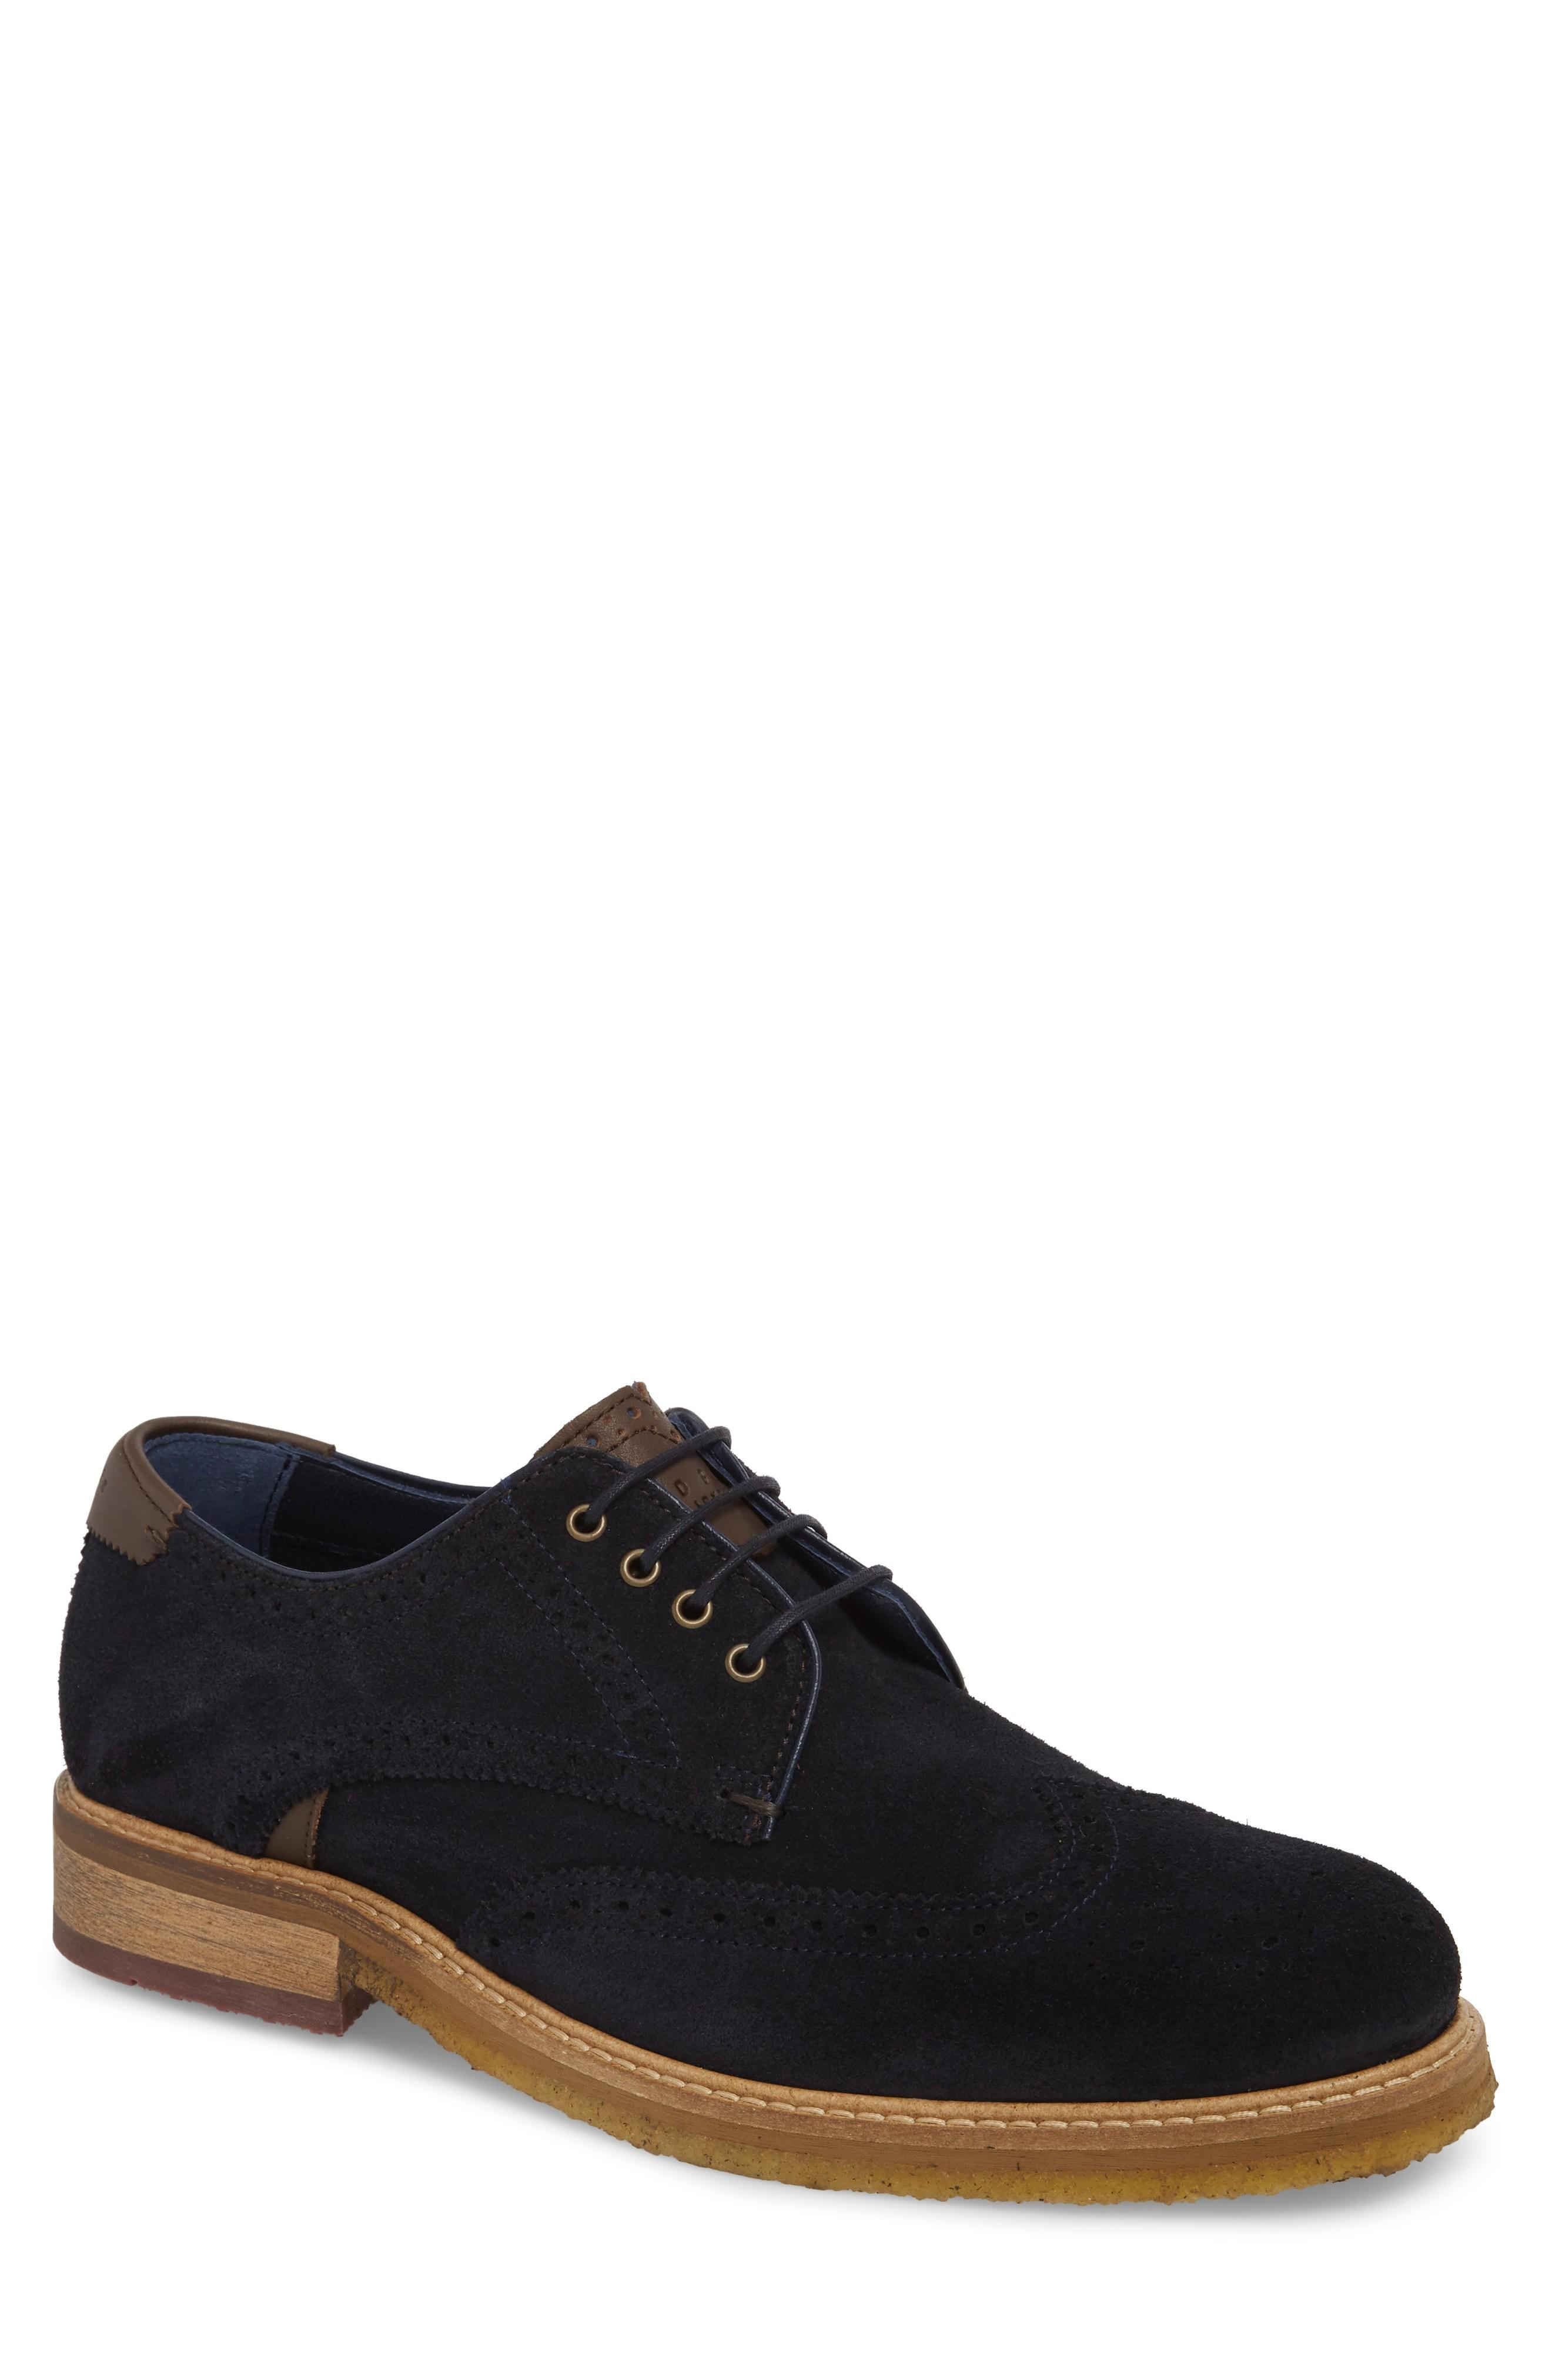 Ted Baker Brycces Wingtip Oxford In Dark Blue Suede